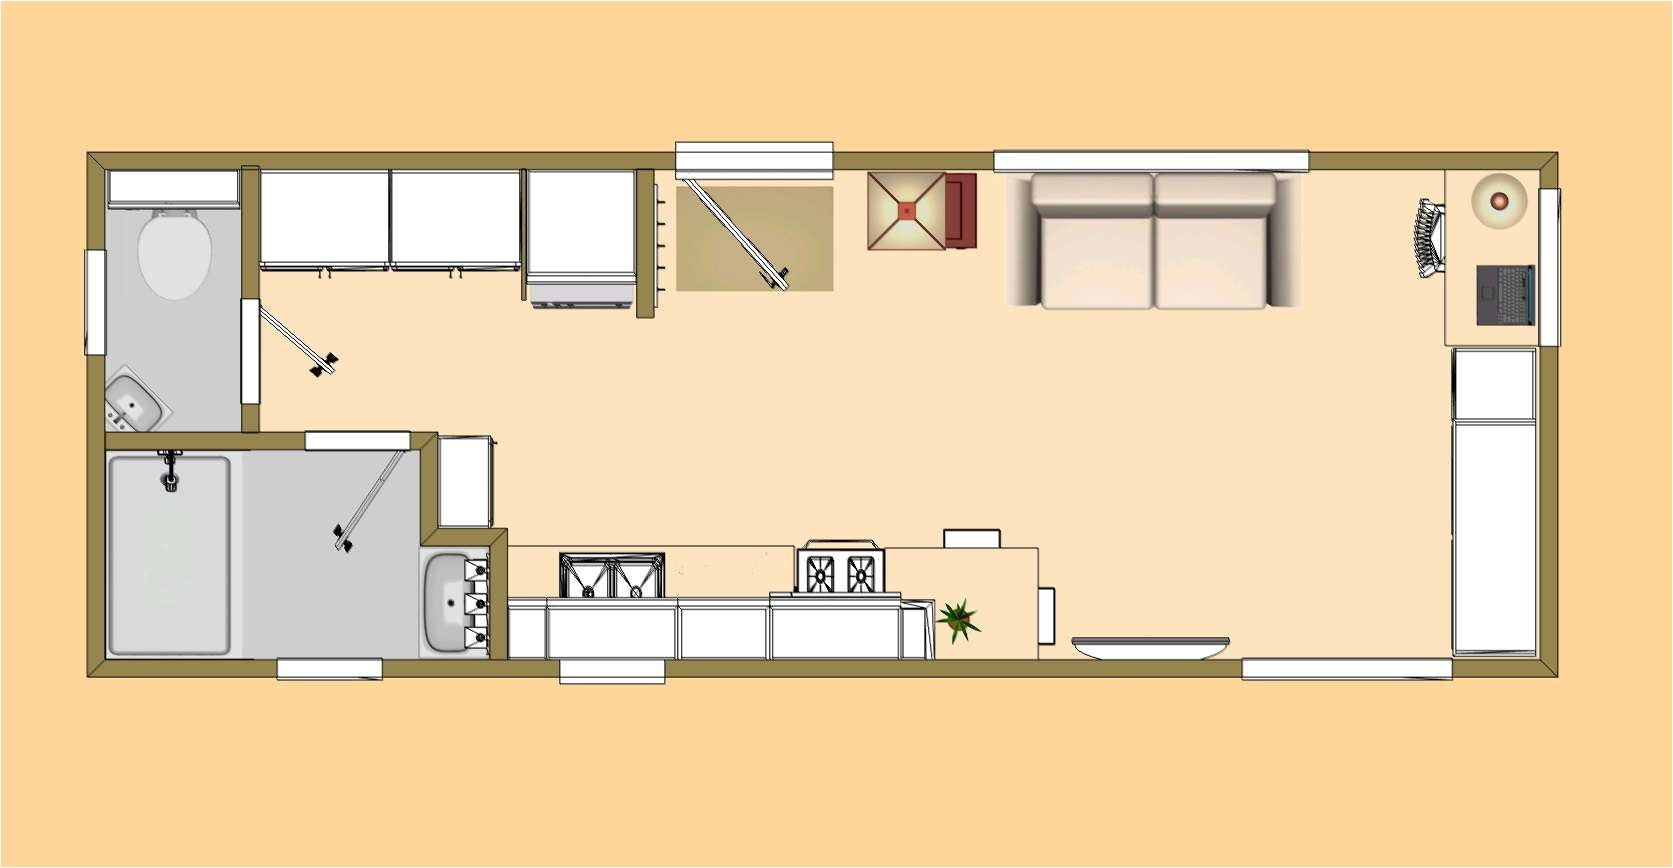 500 square feet house plan home floor plans 500 square feet slyfelinos 2